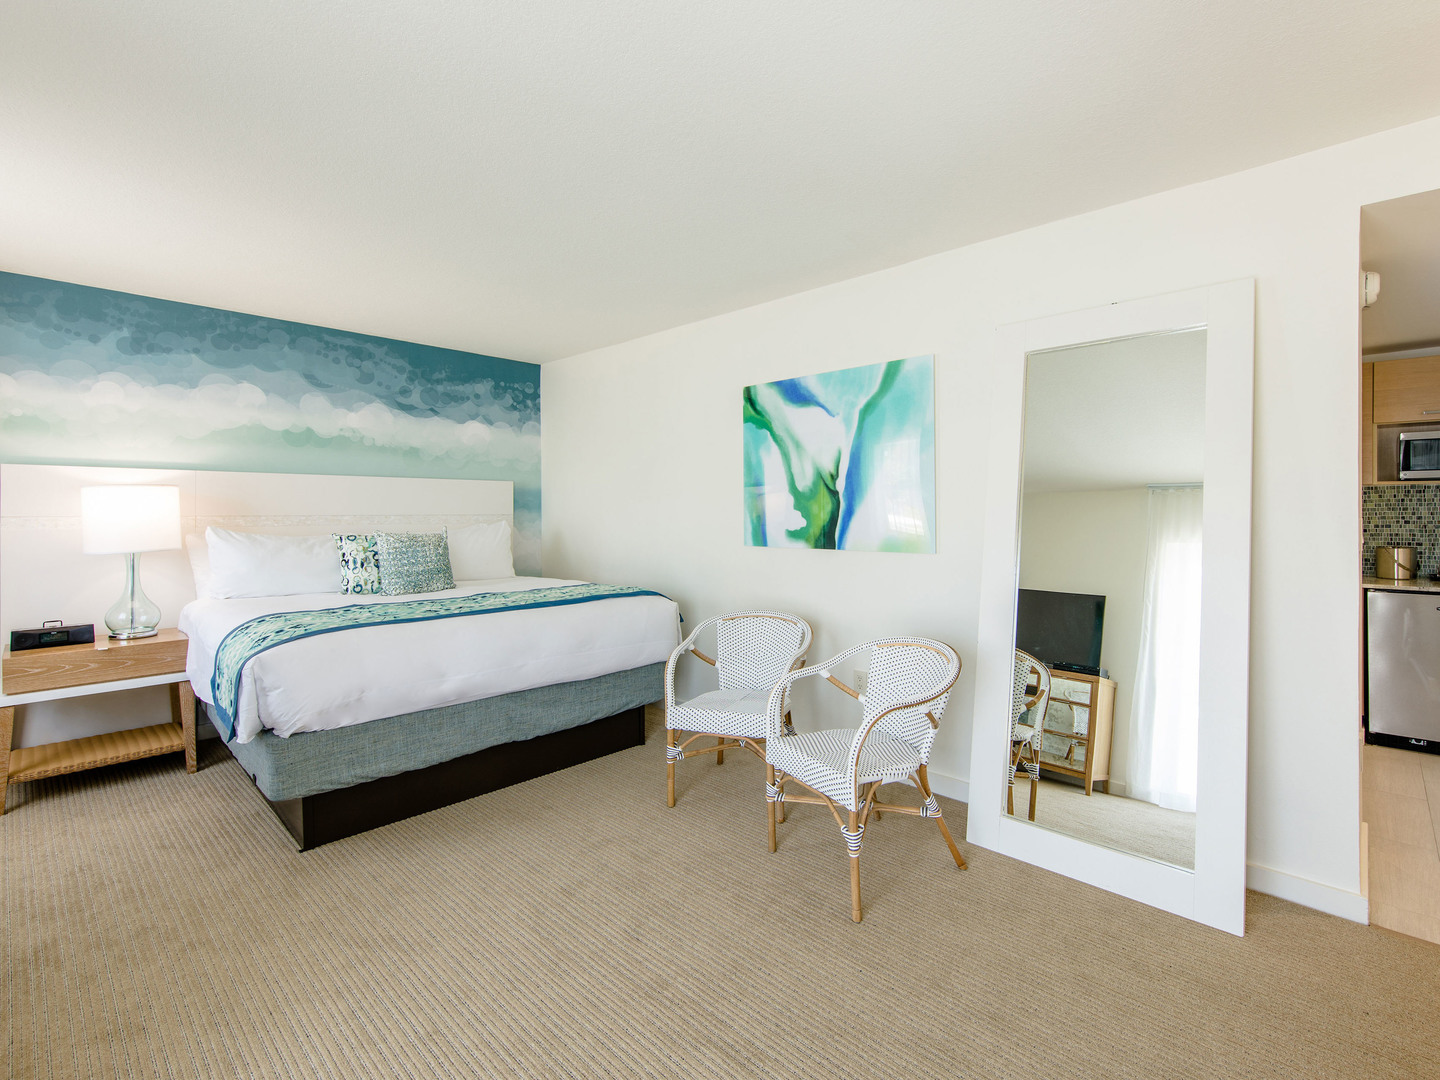 Marriott Vacation Club Pulse<span class='trademark'>®</span>, South Beach Studio. Marriott Vacation Club Pulse<span class='trademark'>®</span>, South Beach is located in Miami Beach, Florida United States.